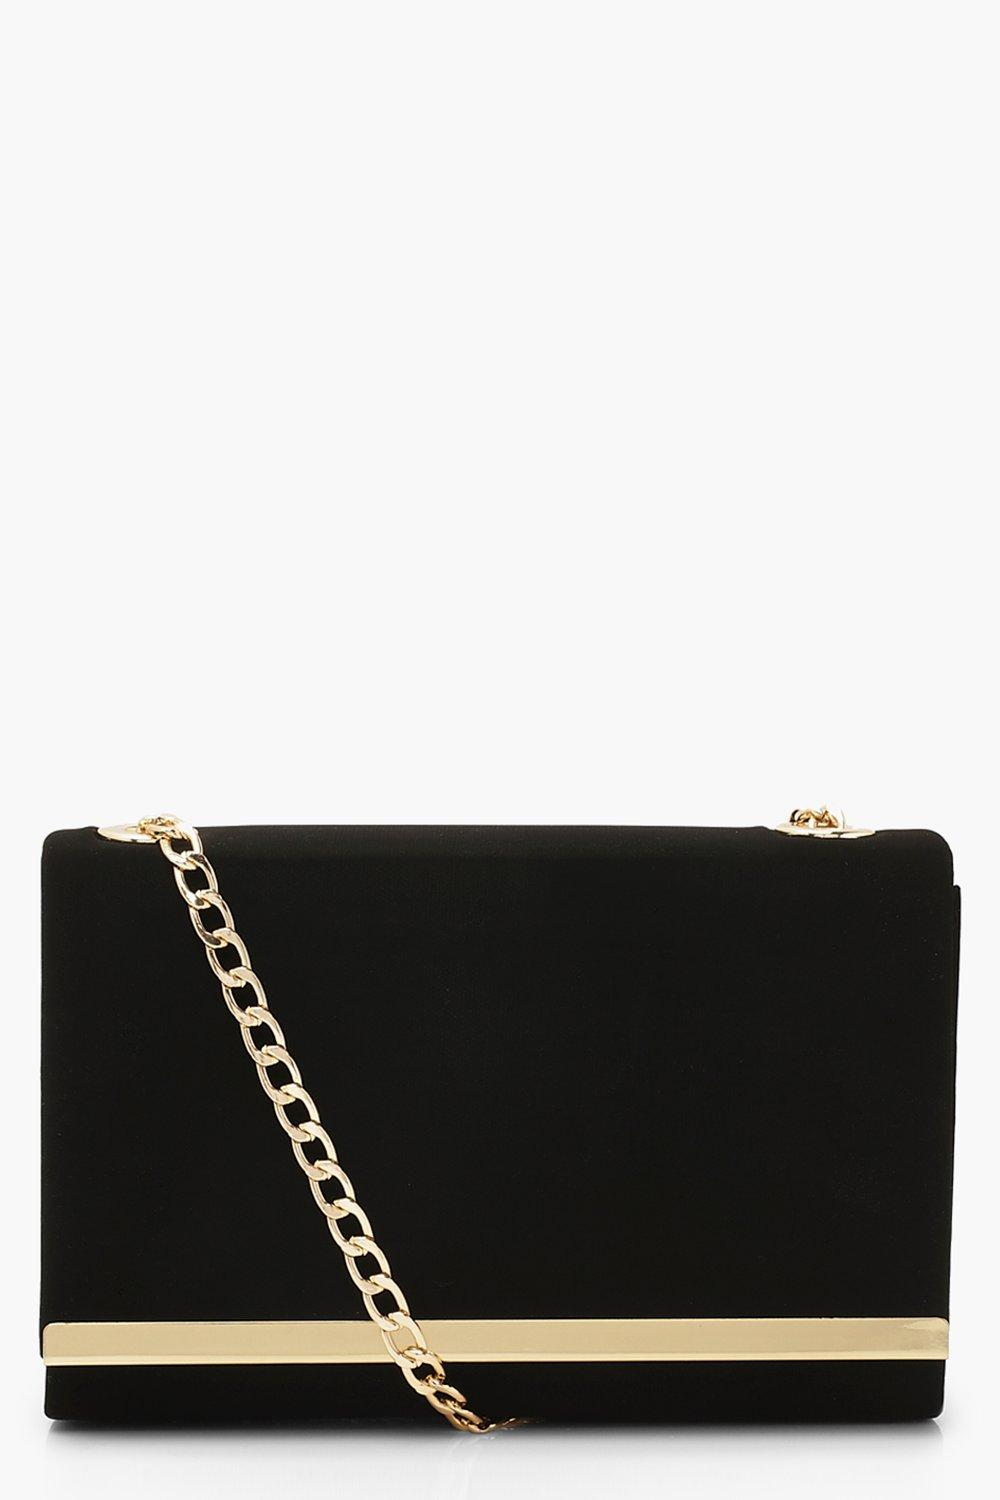 boohoo Womens Structured Suedette Clutch Bag And Chain - Black - One Size, Black